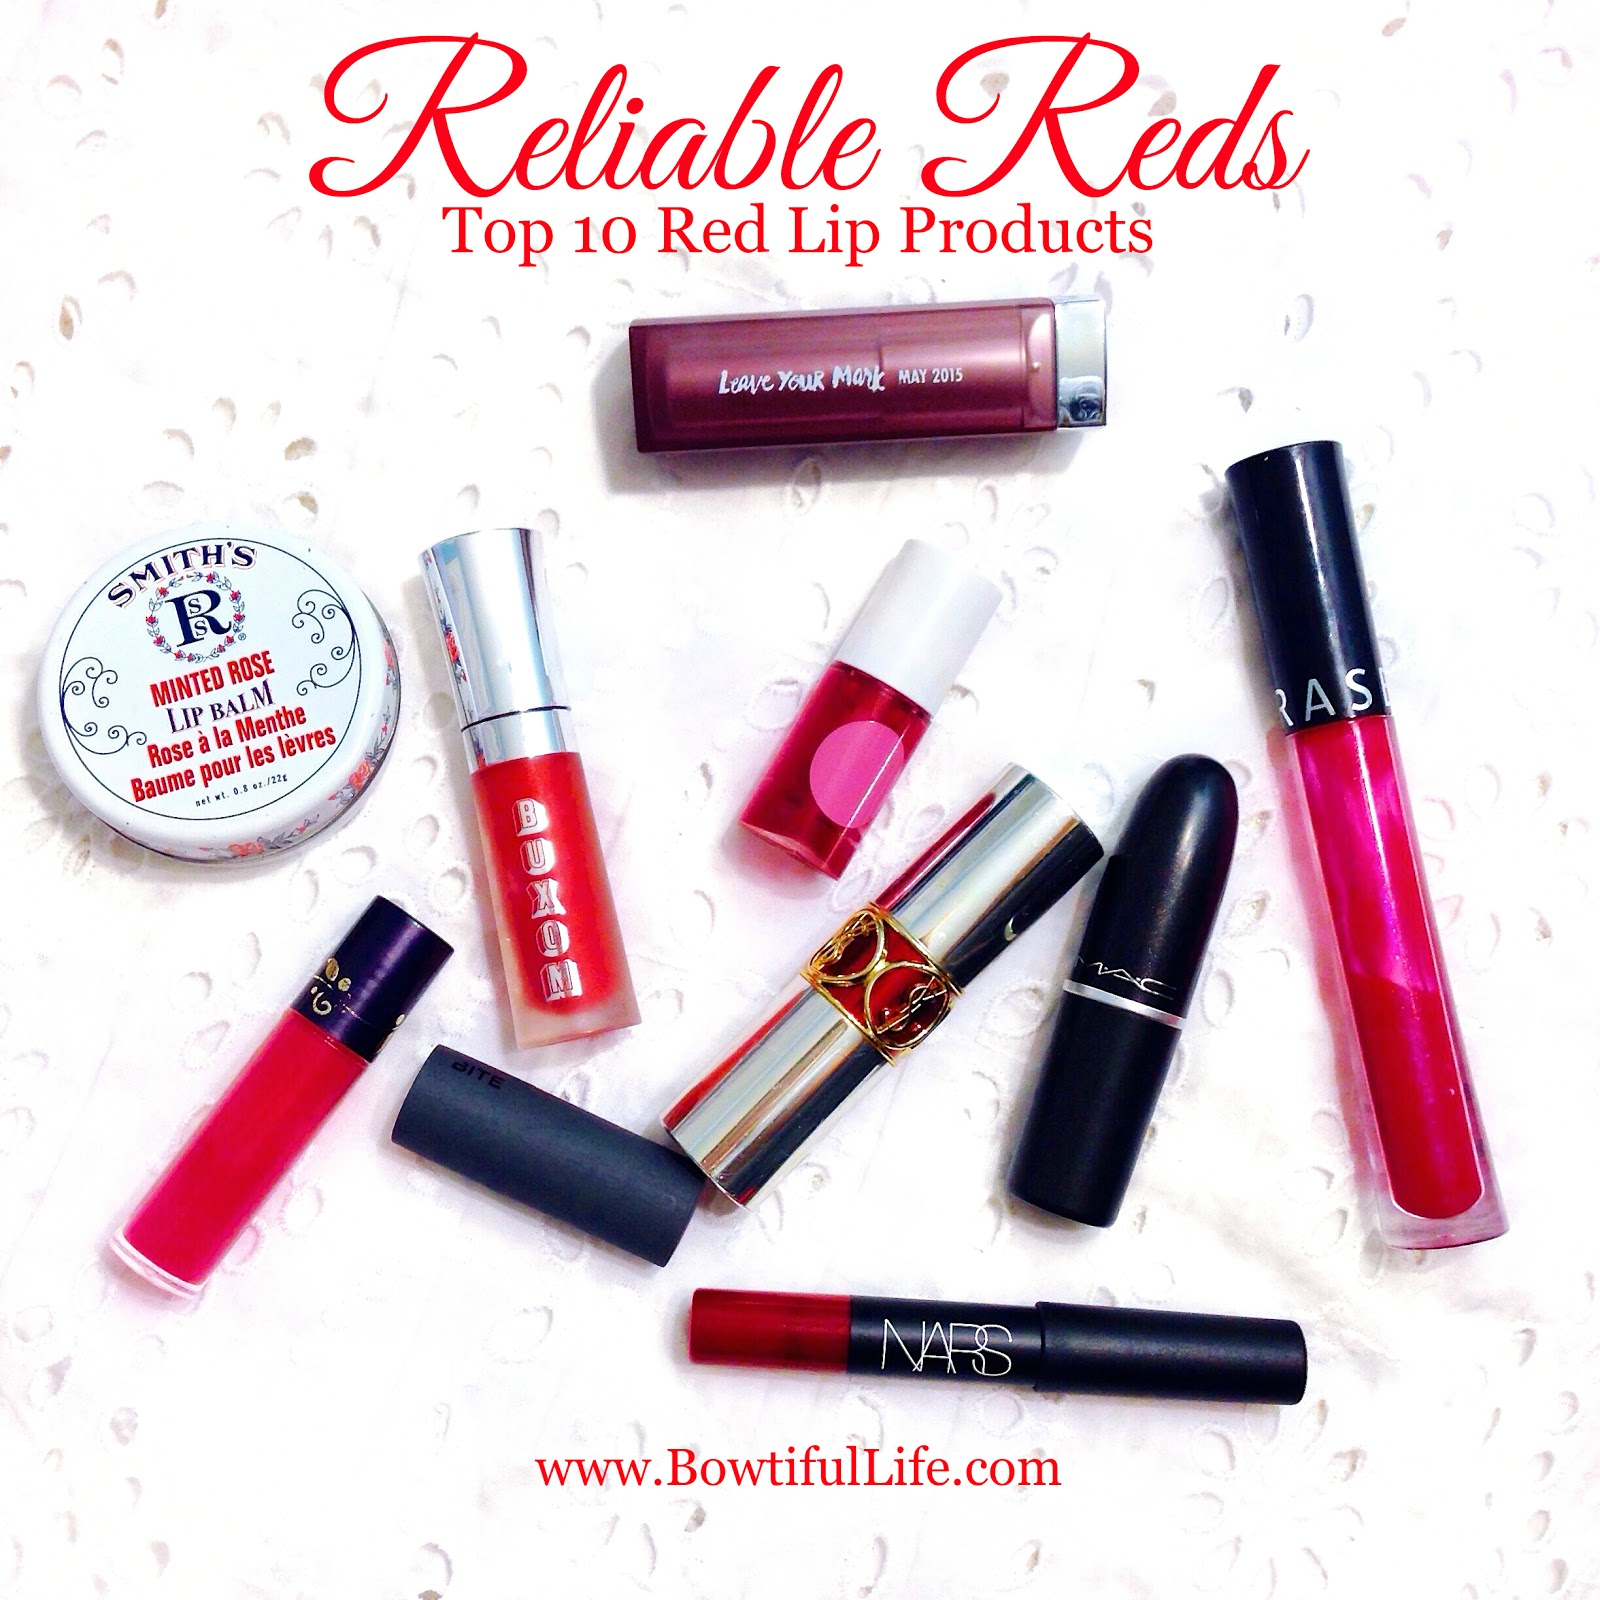 Reliable Reds – Top 10 Red Lip Products